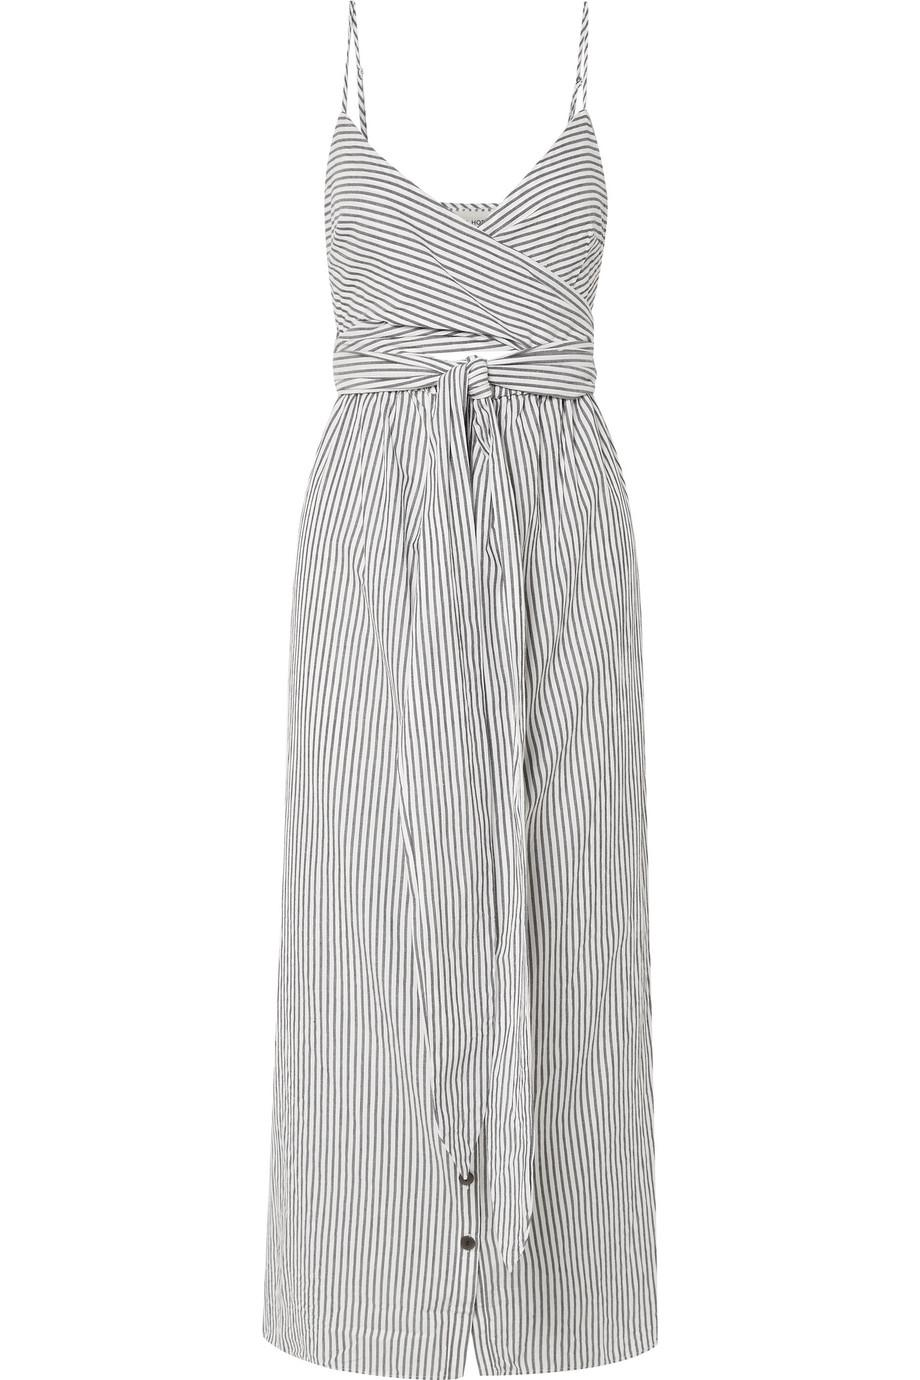 Thora Striped Organic Cotton Midi Dress - Gray Mara Hoffman Outlet Wide Range Of Discount New Styles ZsLg2